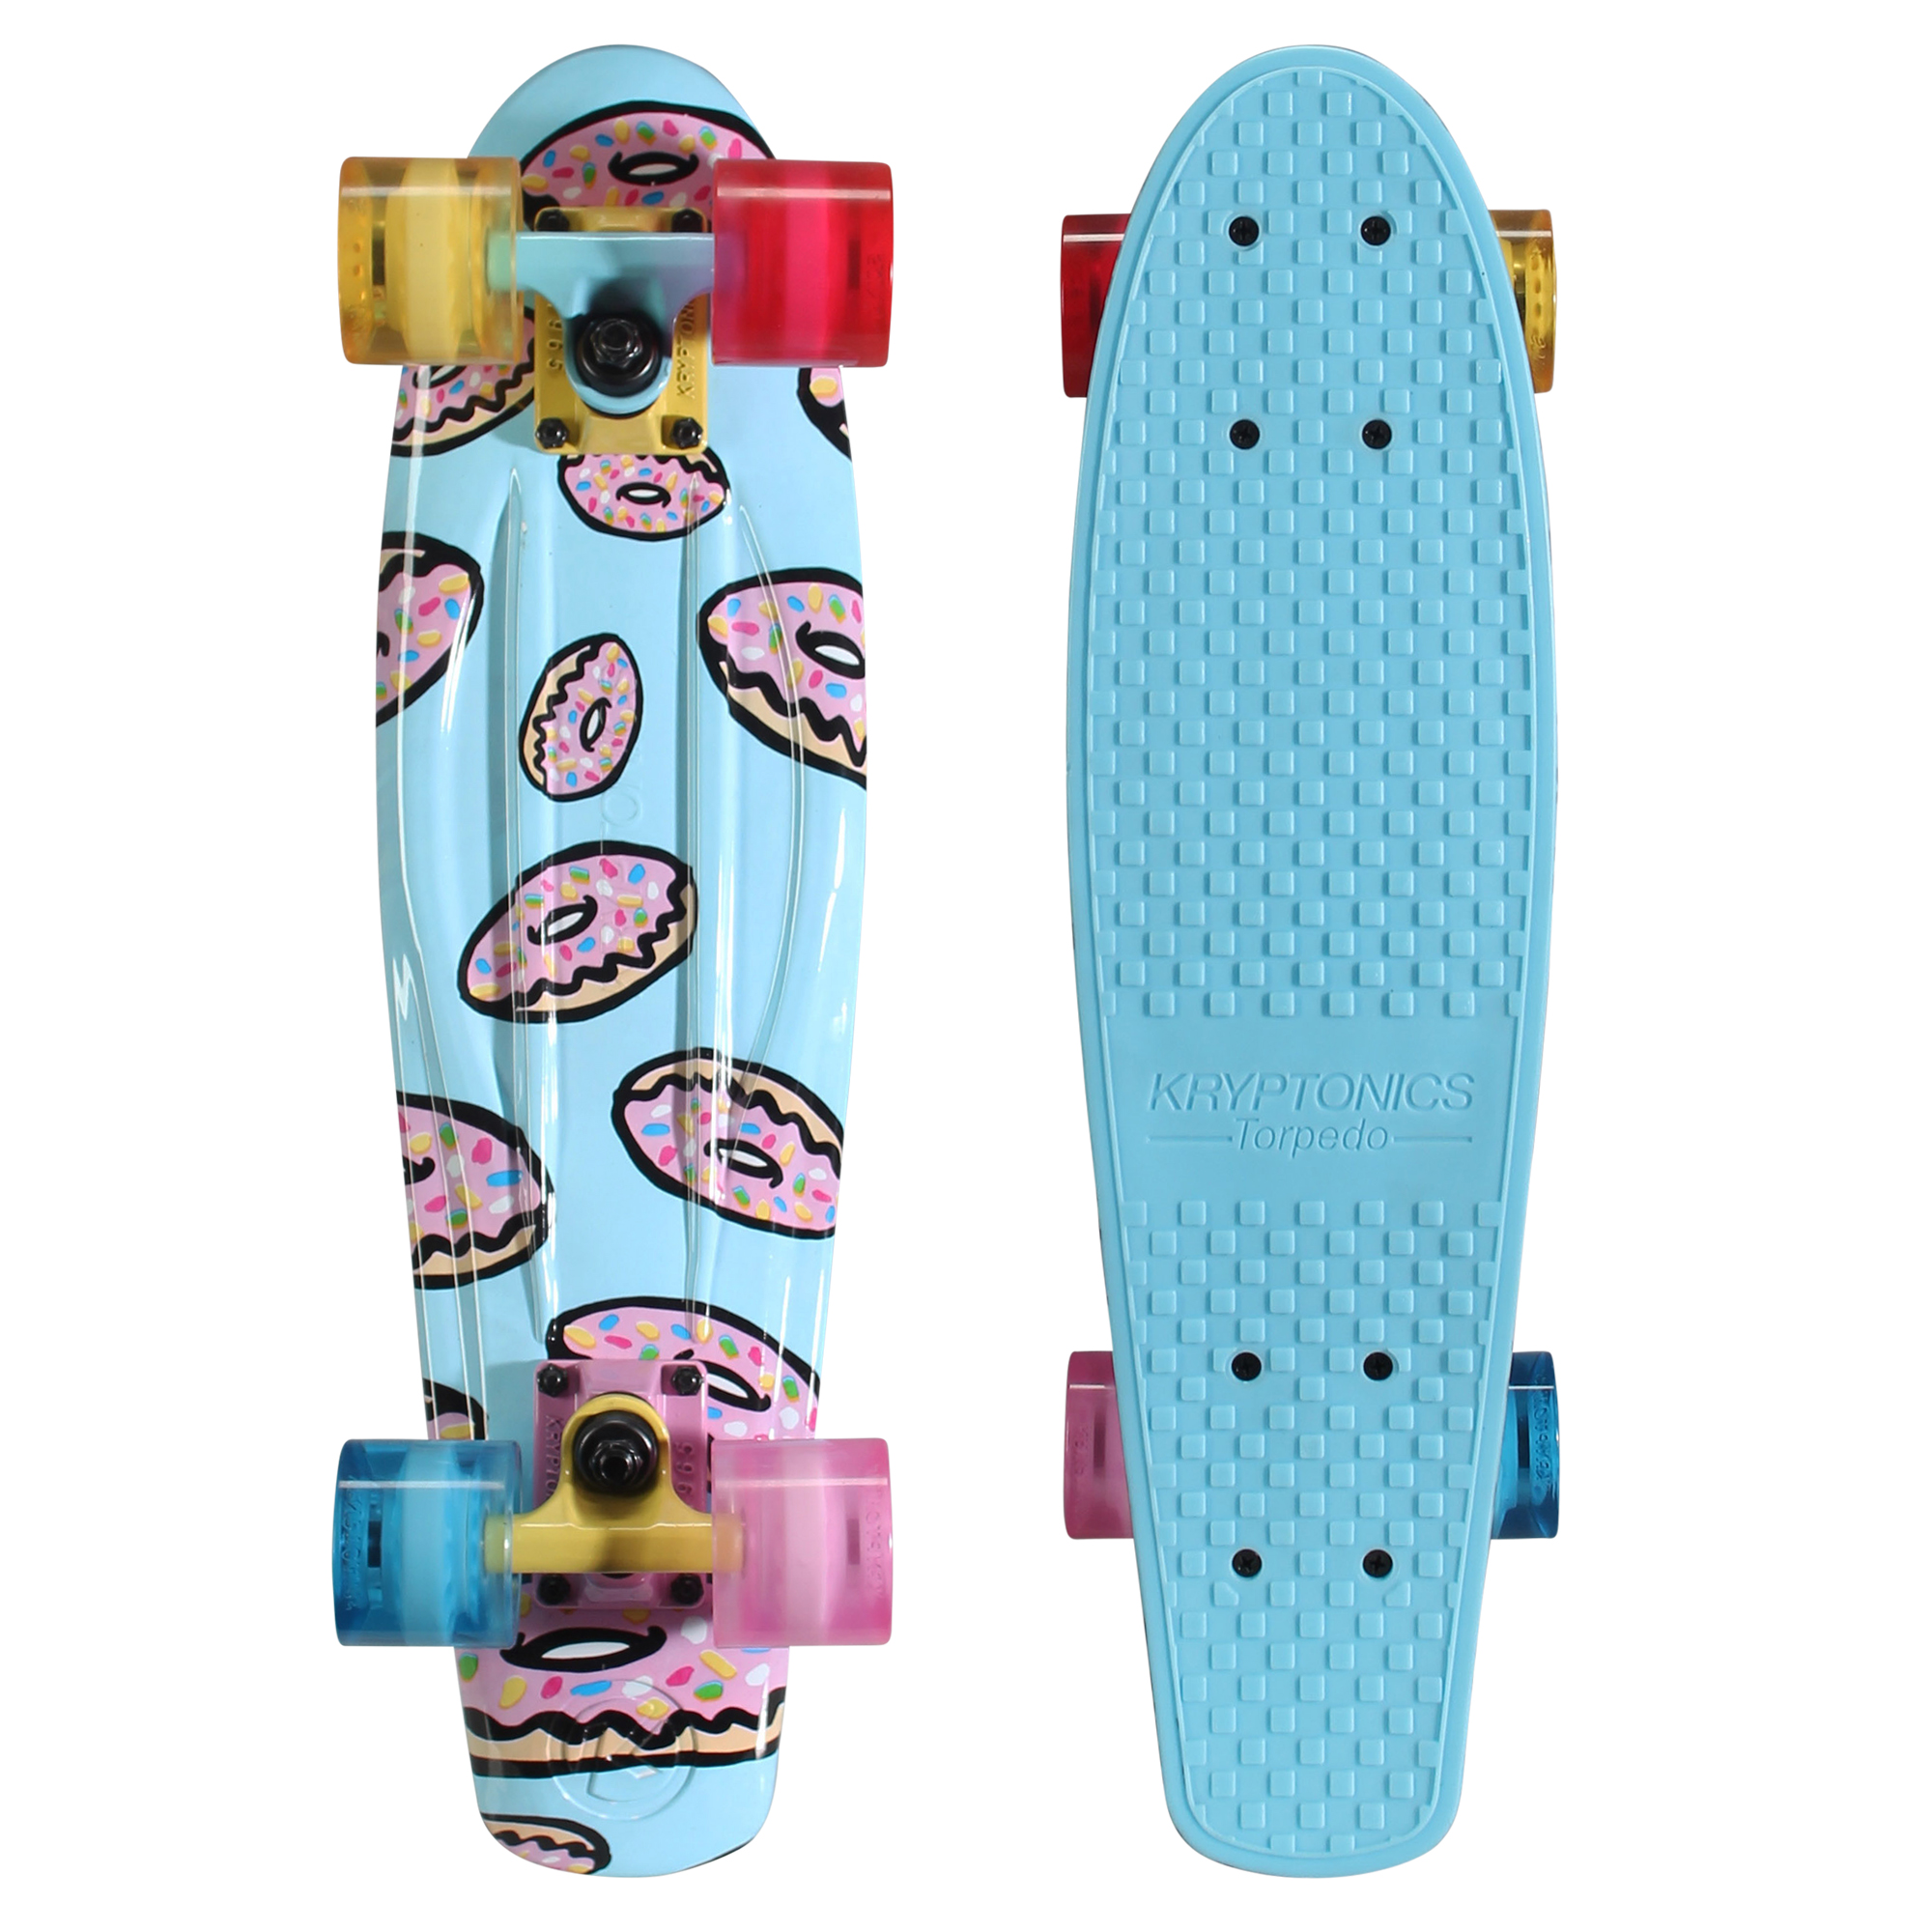 "Kryptonics Original Torpedo Complete Skateboard (22.5"" x 6"") by Bravo Sports"